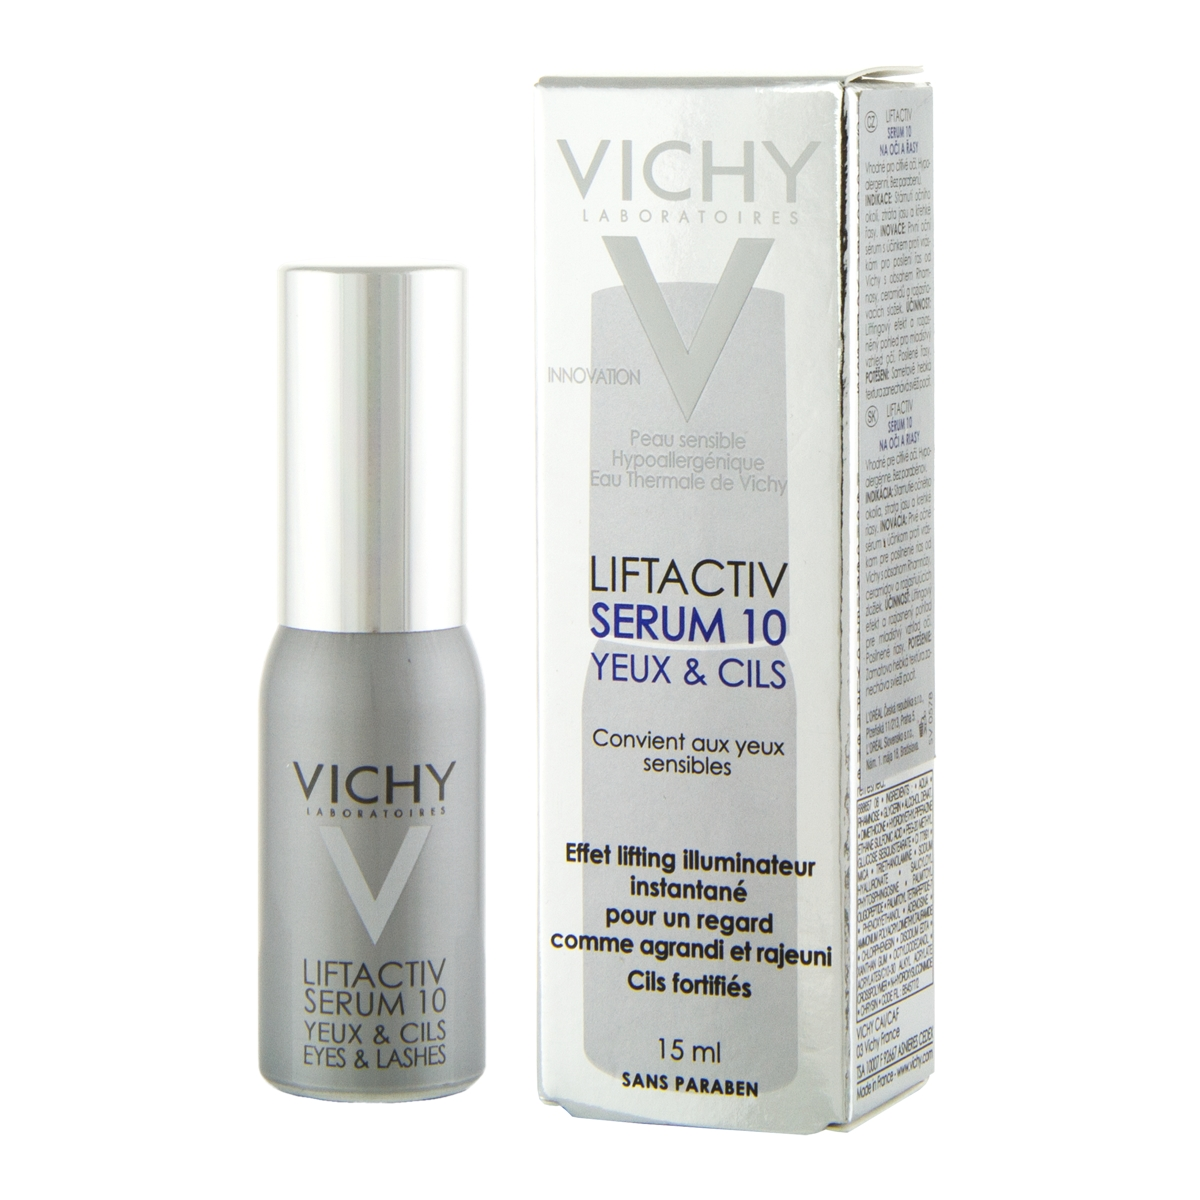 Vichy Liftactiv Derm Source Serum 10 15 ml